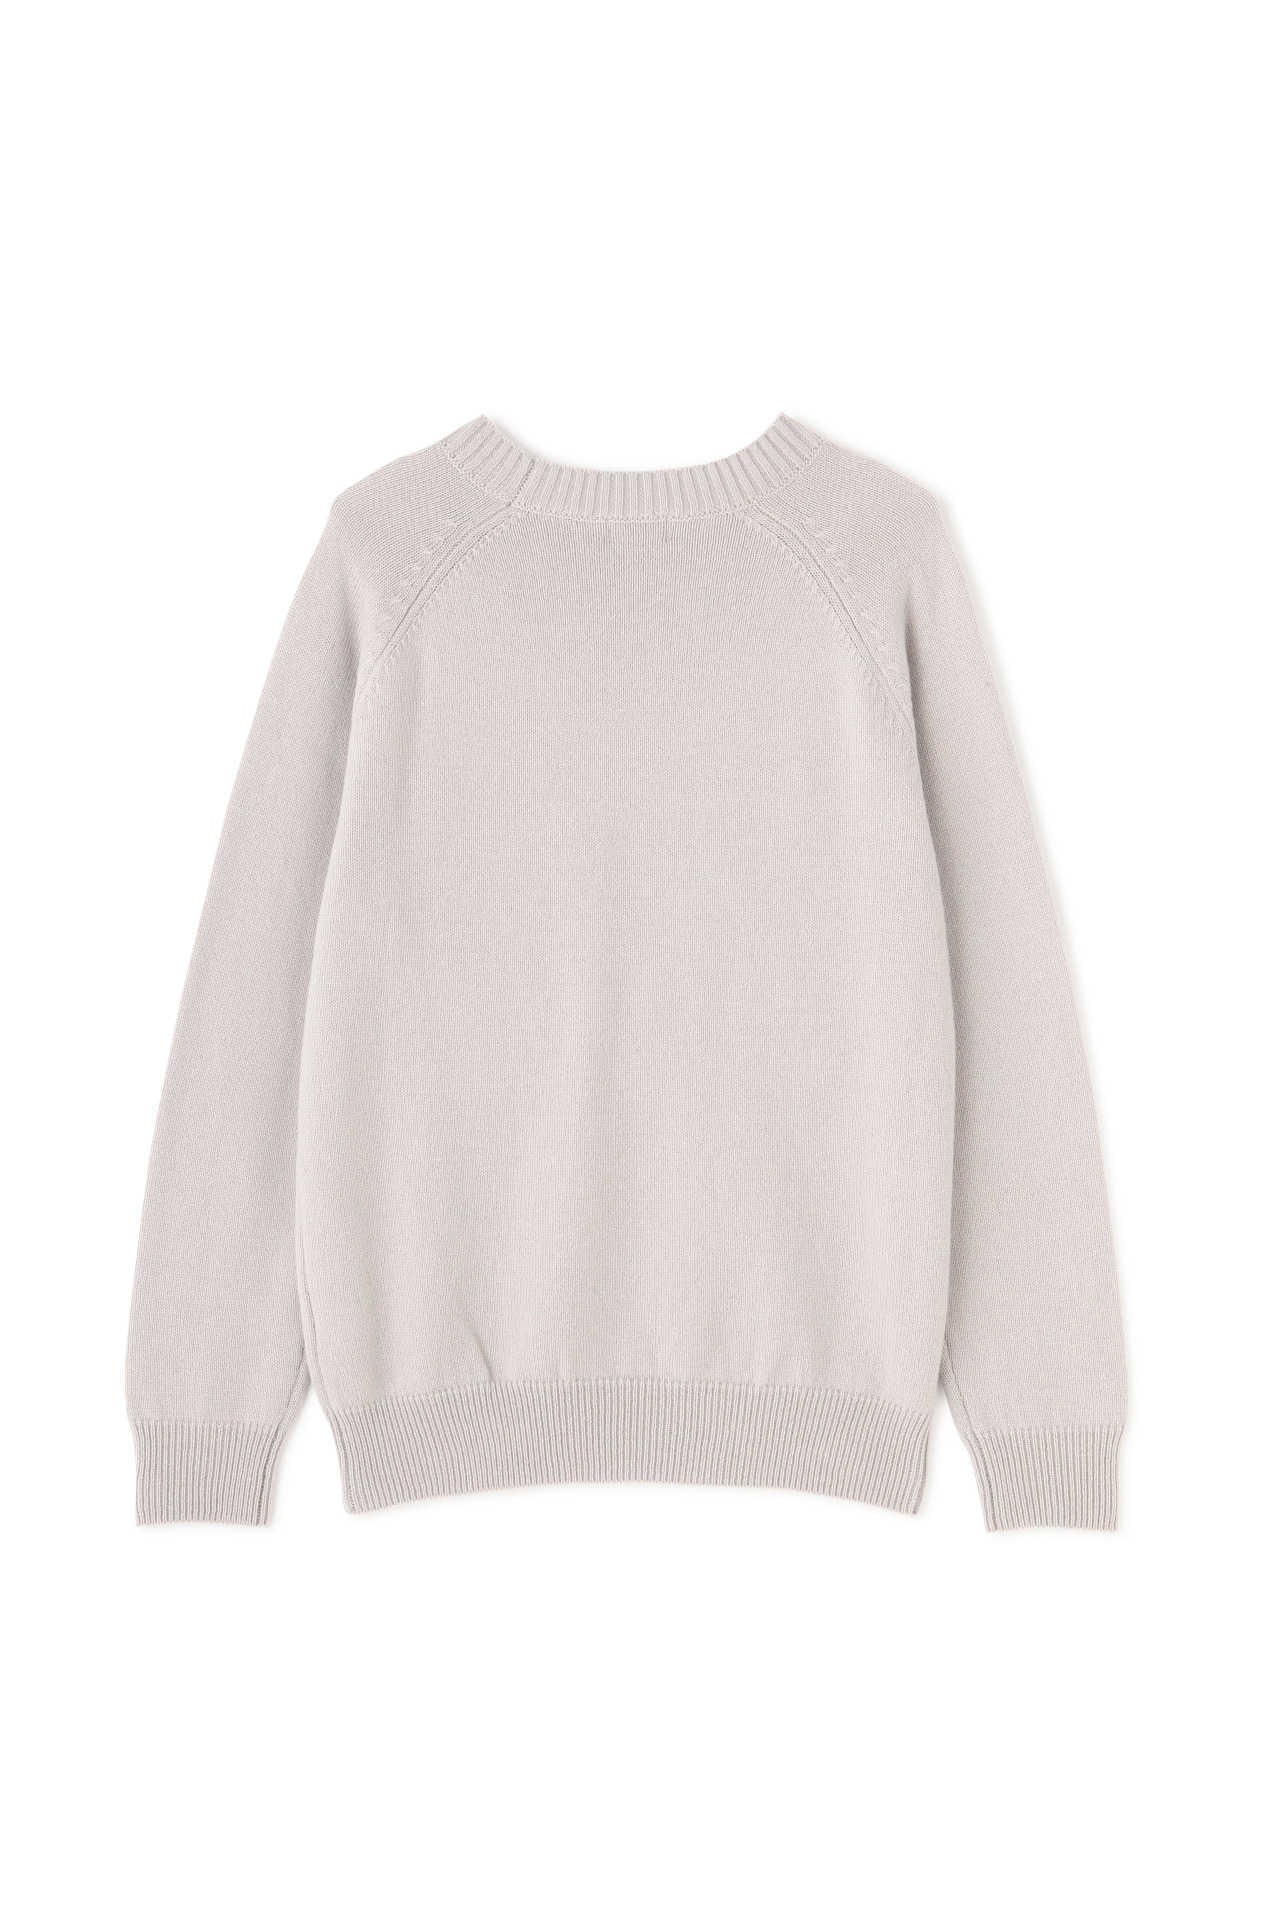 PLAIN WOOL COTTON7